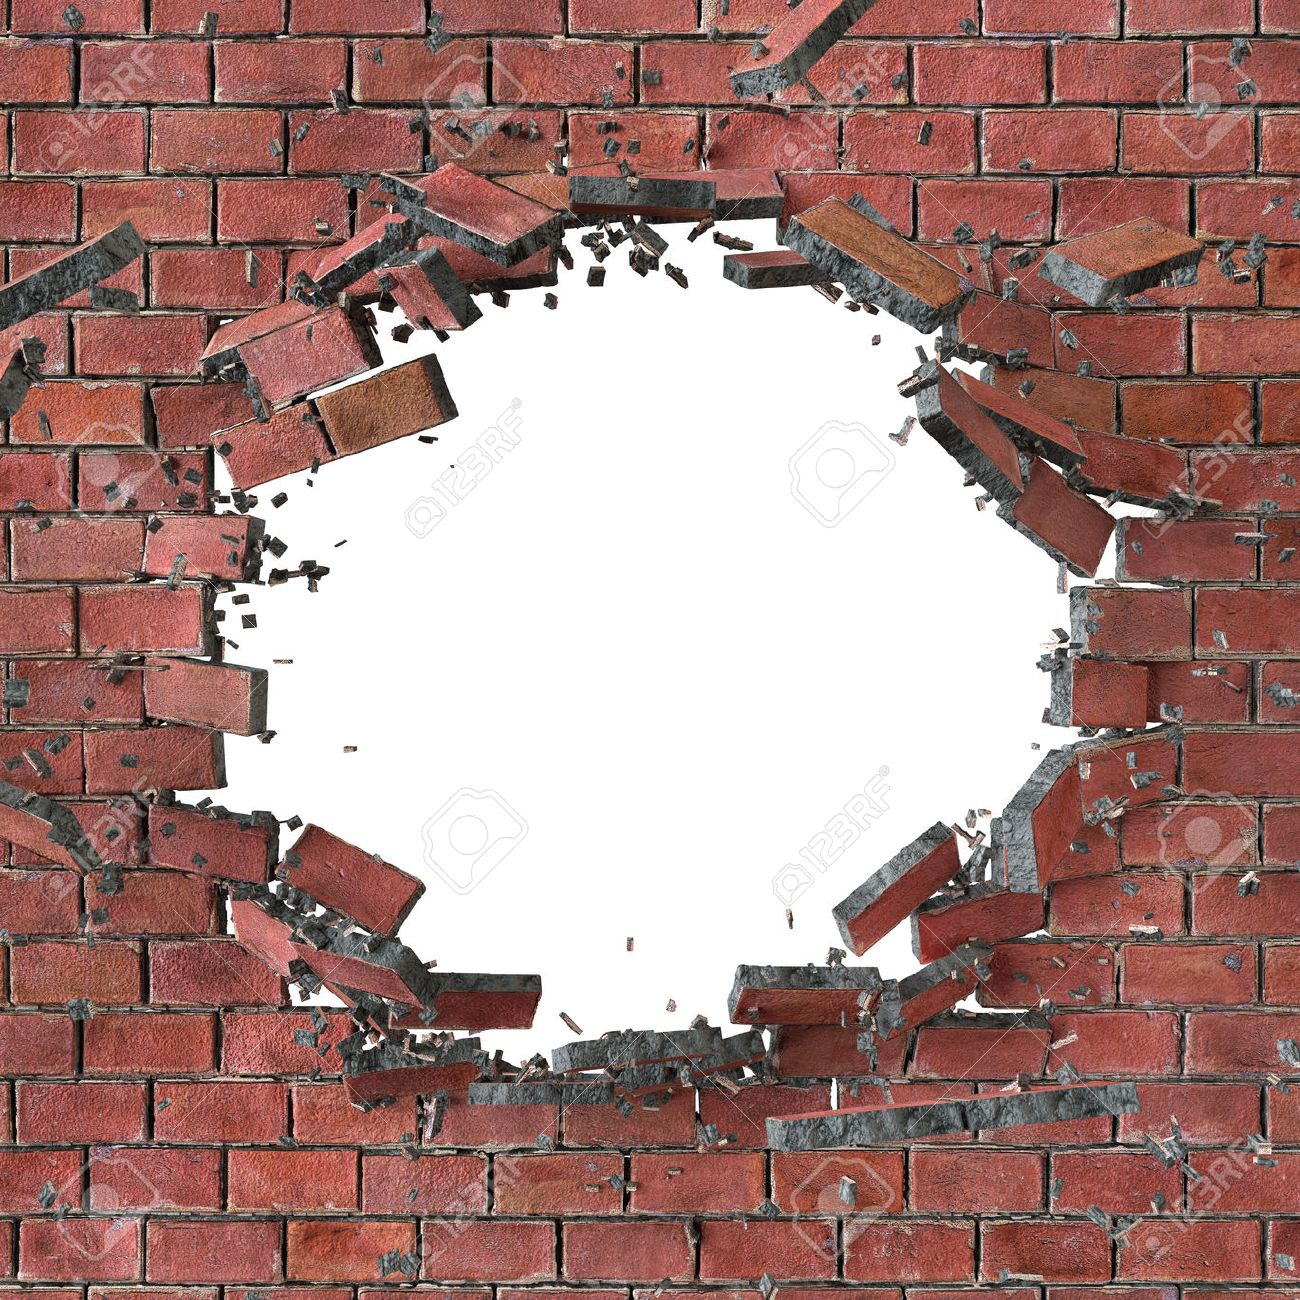 Cracked brick wall drawing brick wall - Broken Wall 3d Render 3d Illustration Explosion Cracked Red Brick Wall